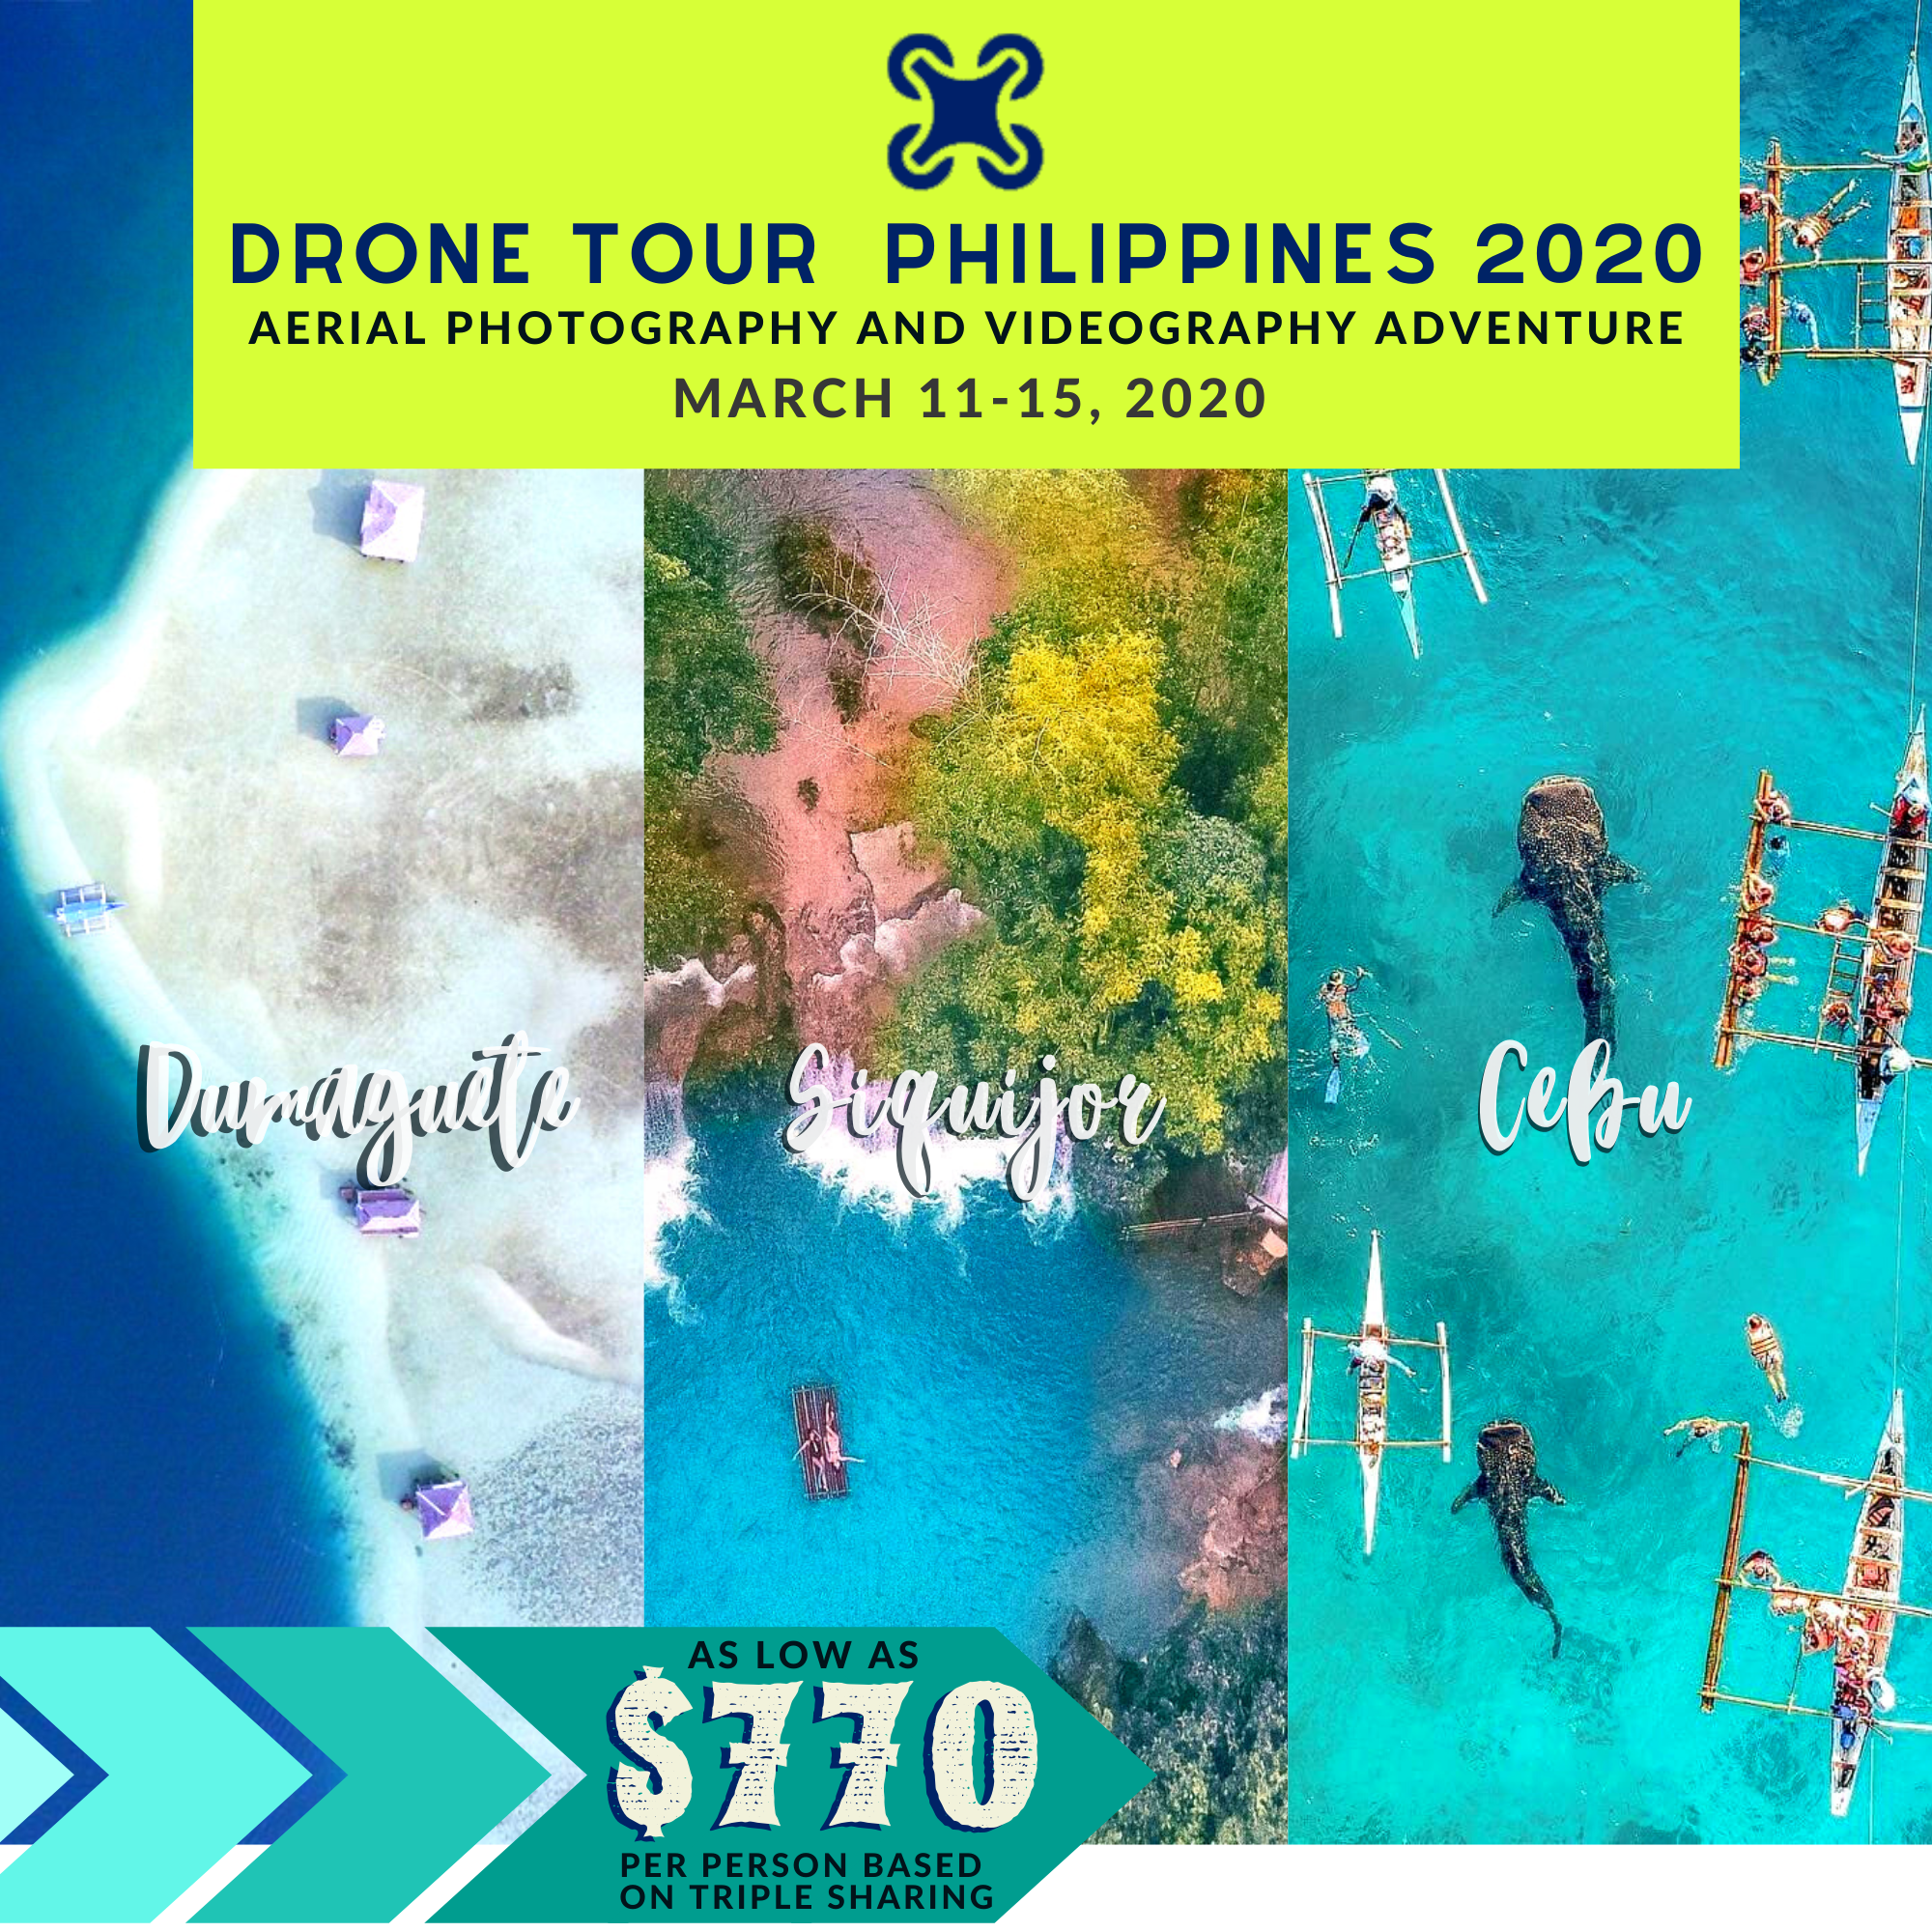 Drone Tour Philippines 2020